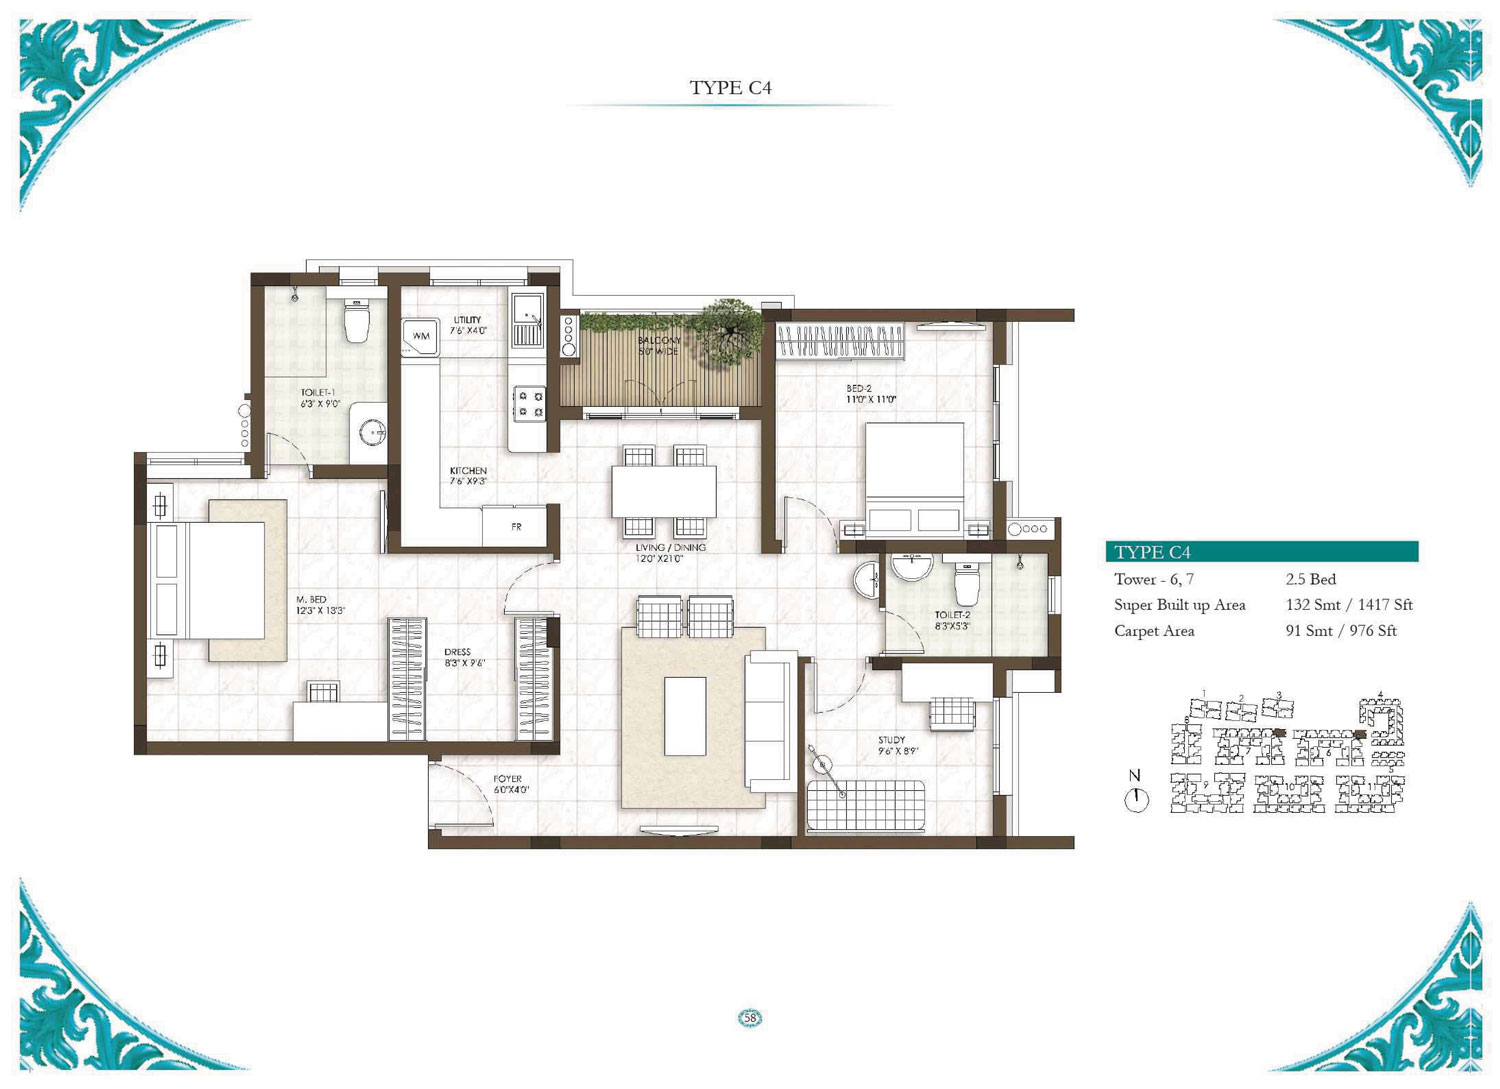 Type C4 - 2.5 Bed - 1417 Sq Ft